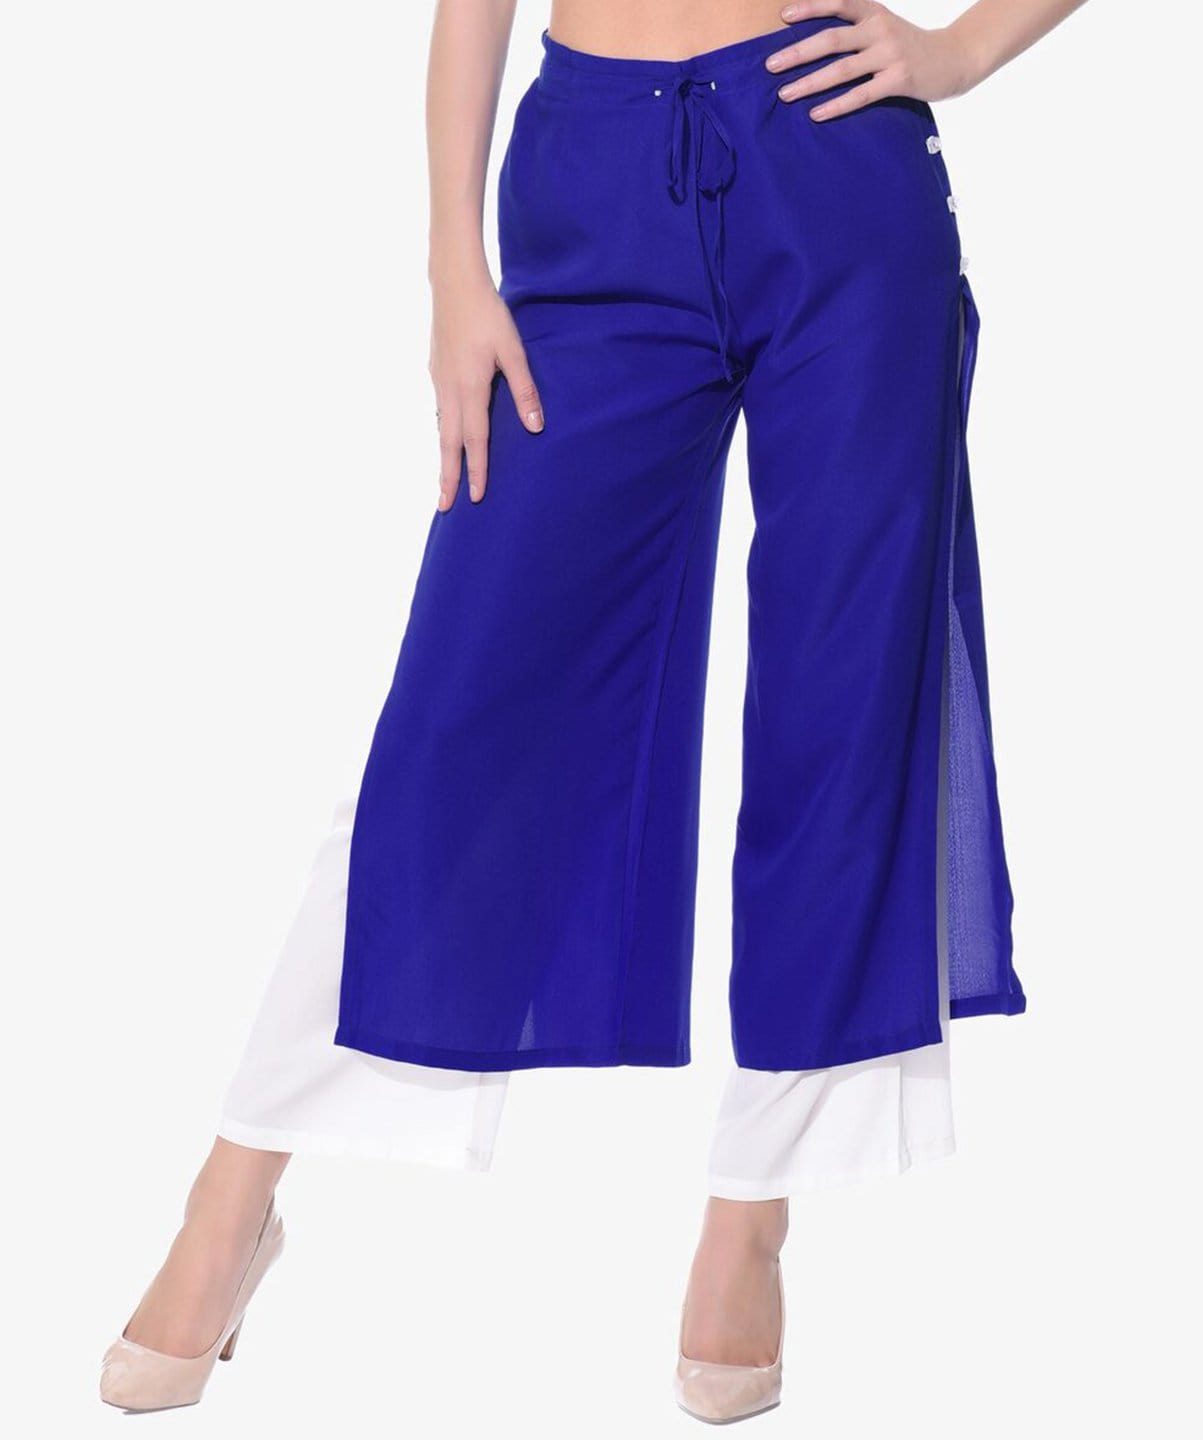 Colorblocked Blue & White Layered Palazzos - Uptownie